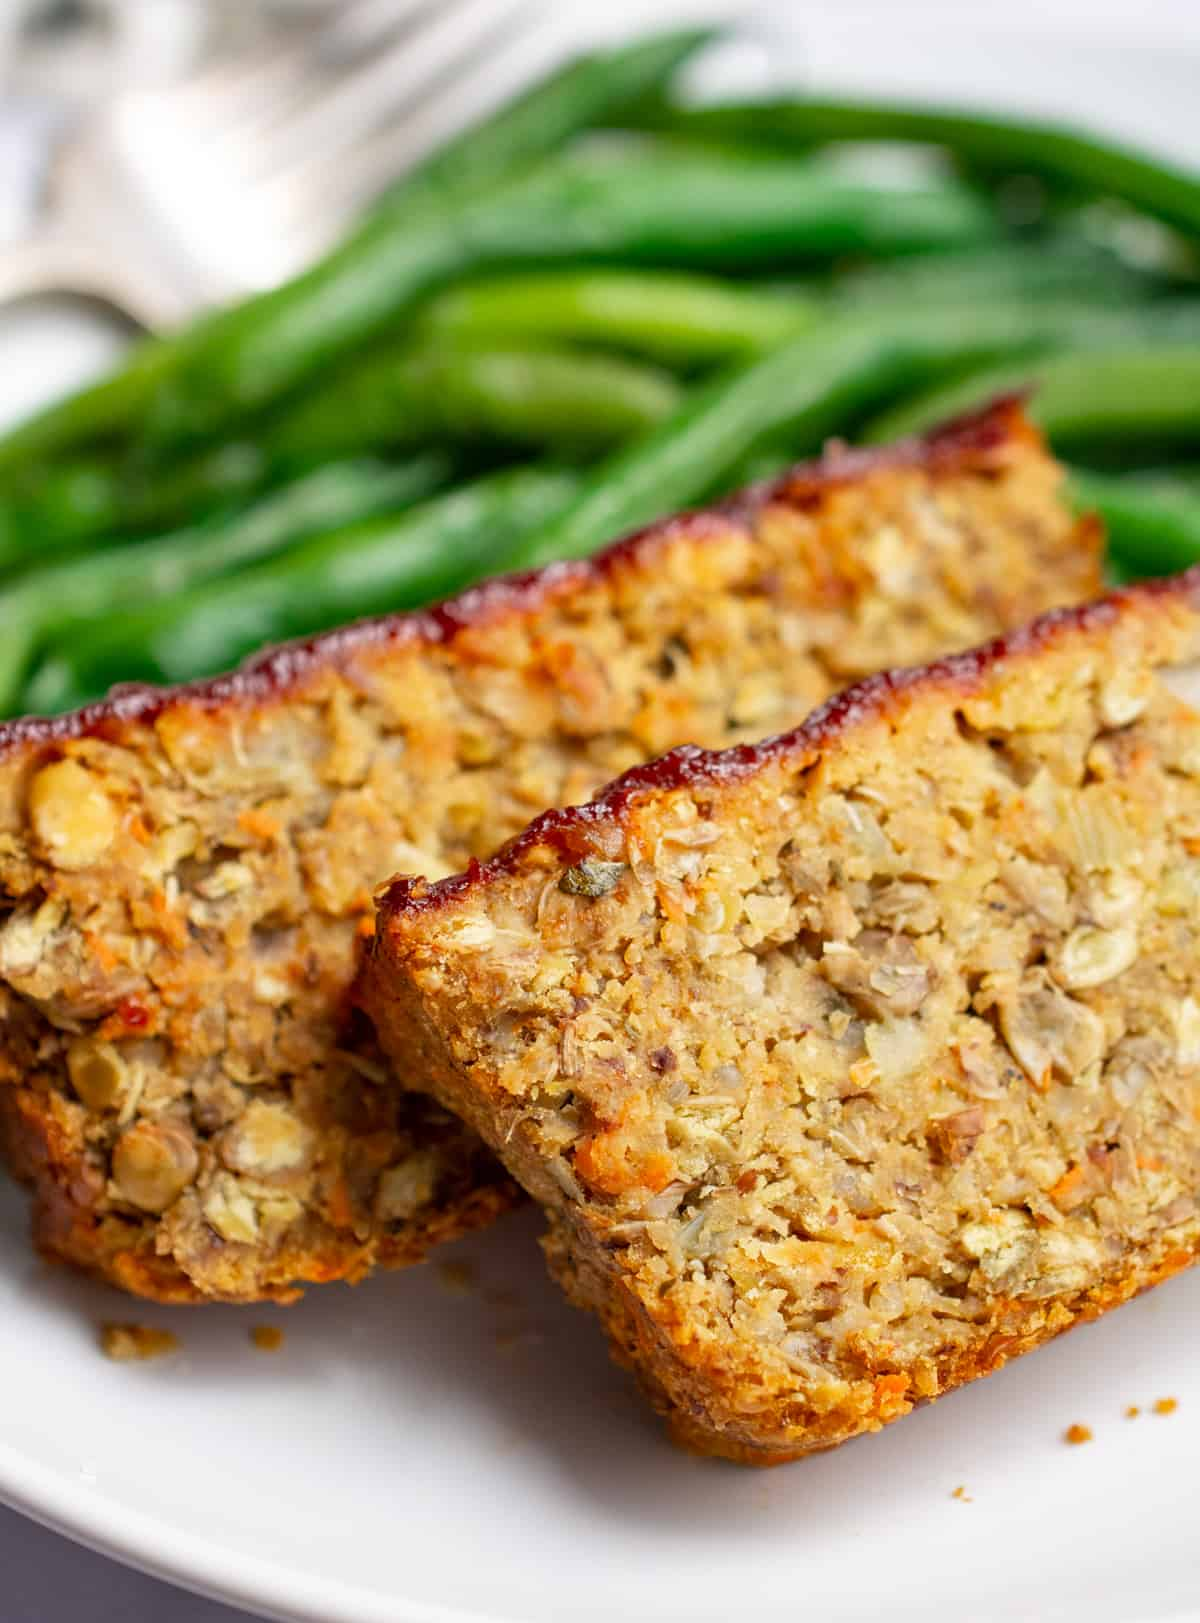 Close up of two slices of lentil loaf on a plate with green beans.